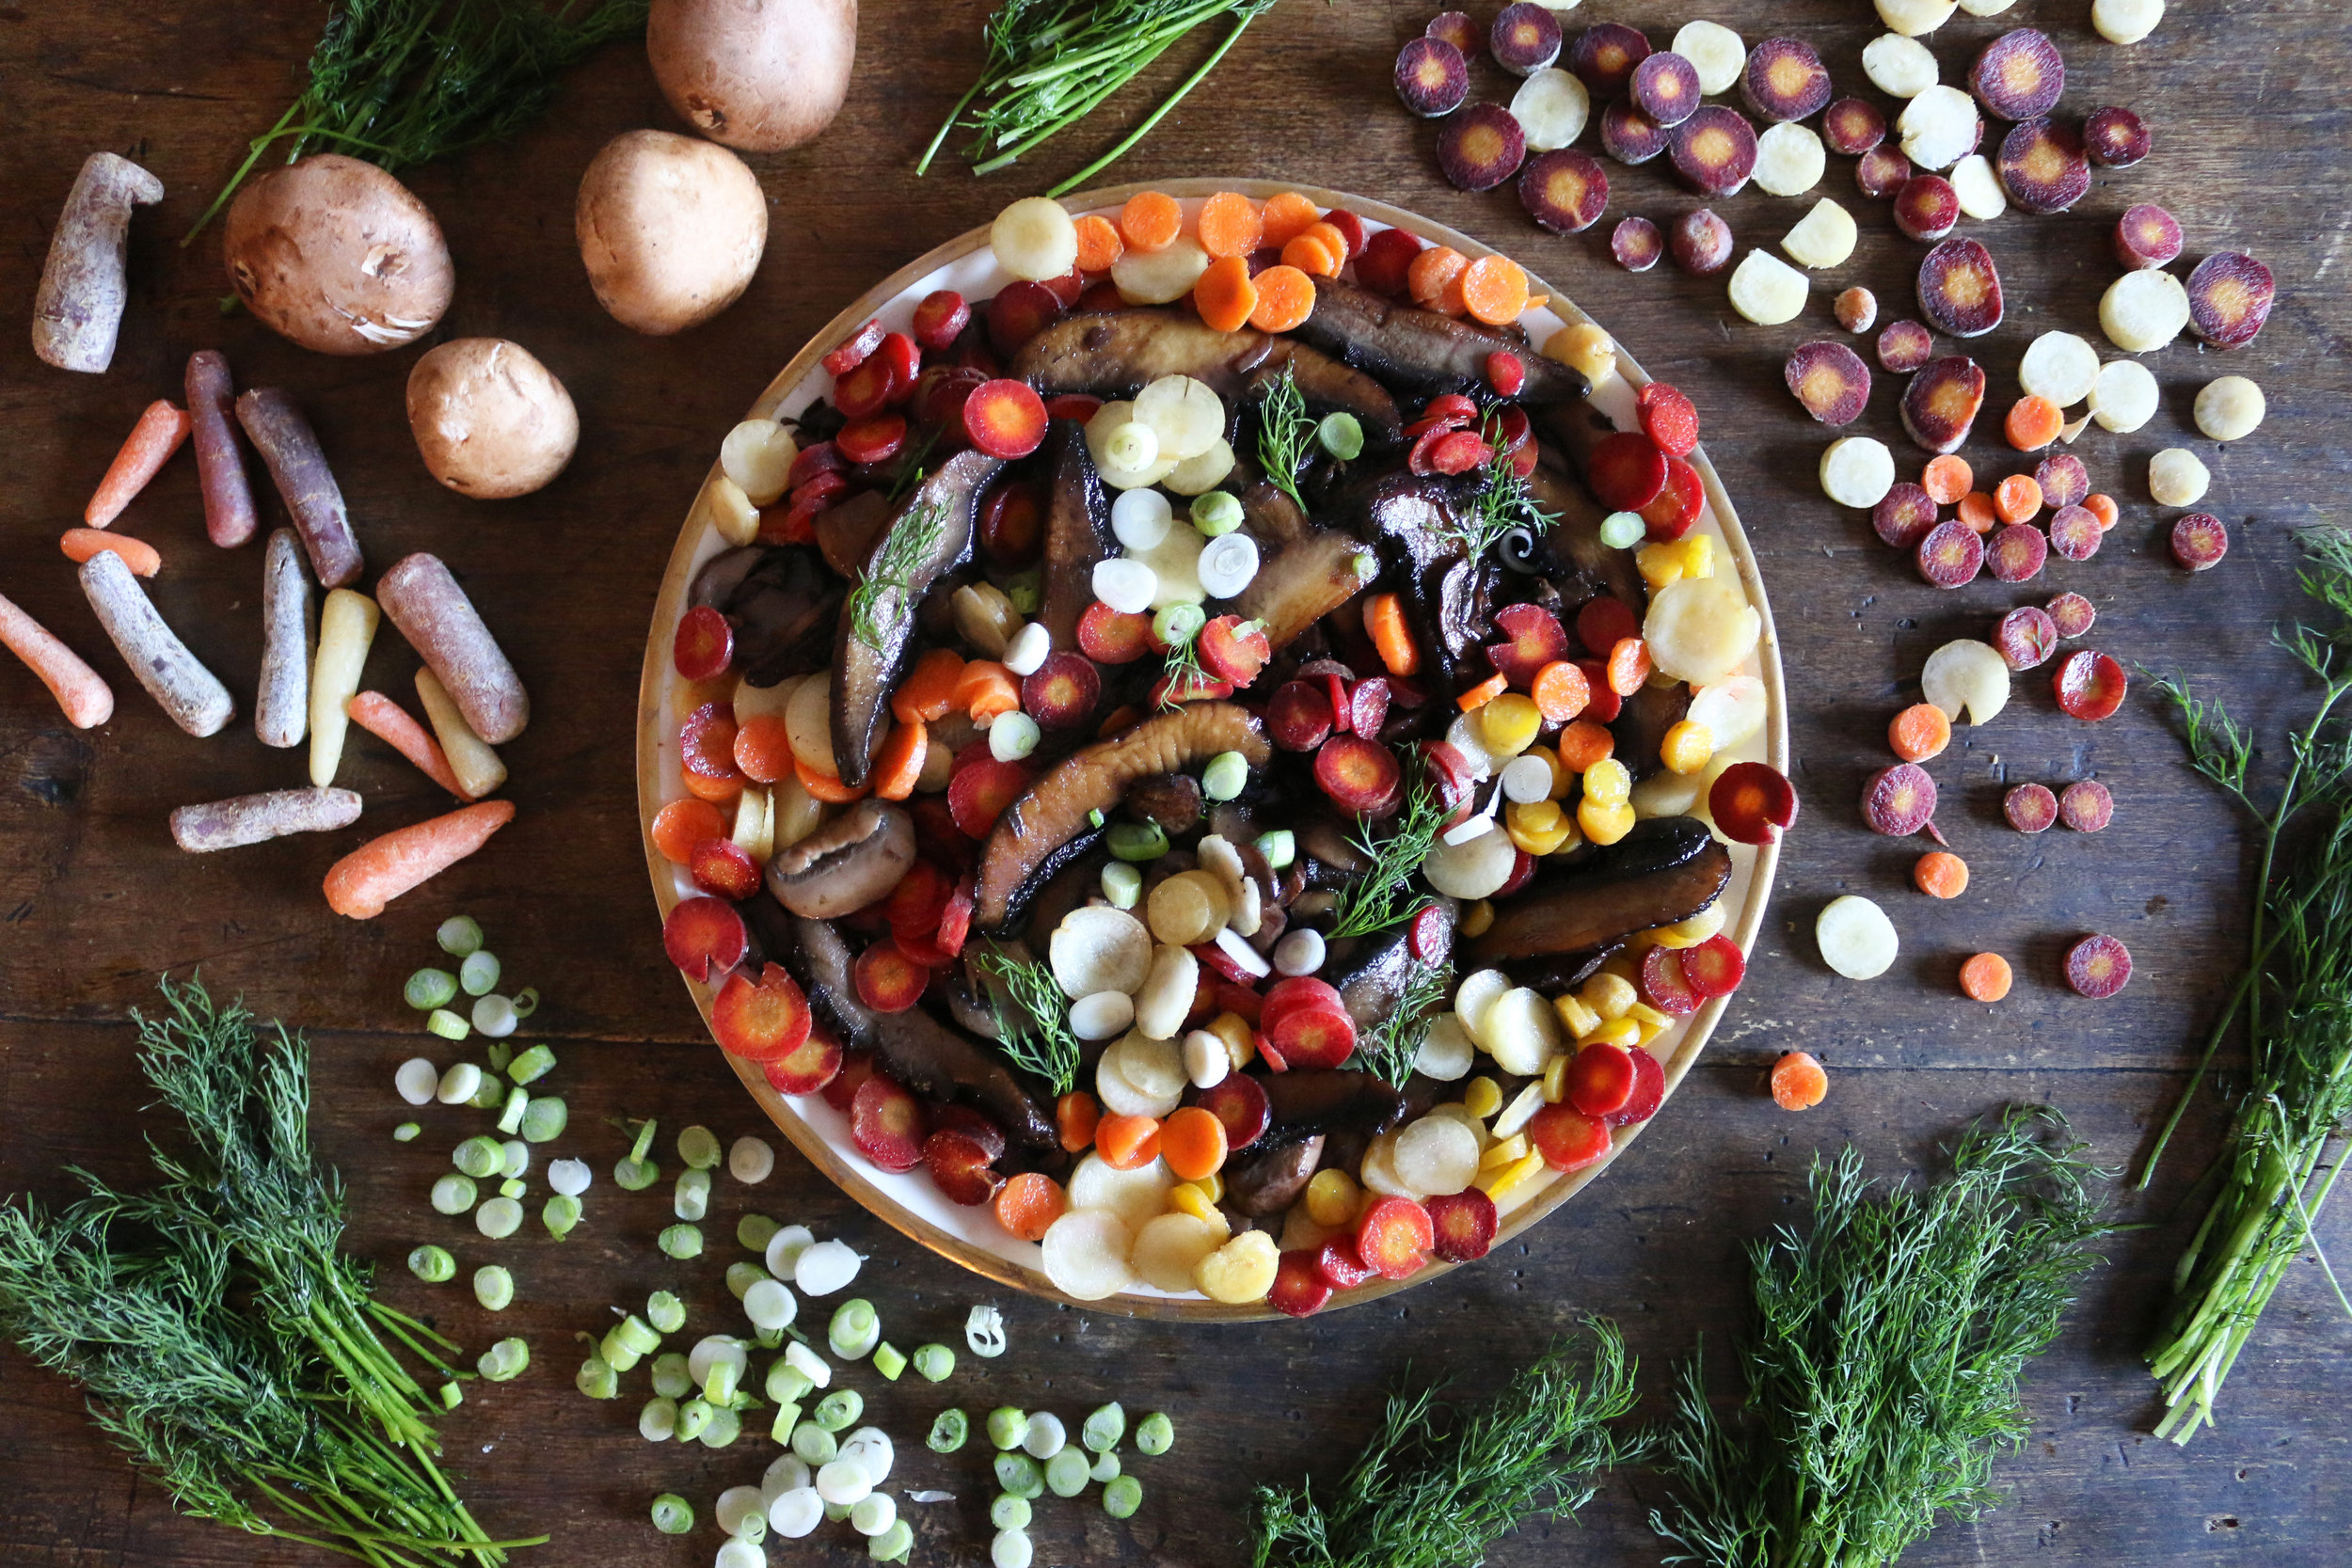 Colorful Carrot and mushroom salad-culinarywitch.jpg